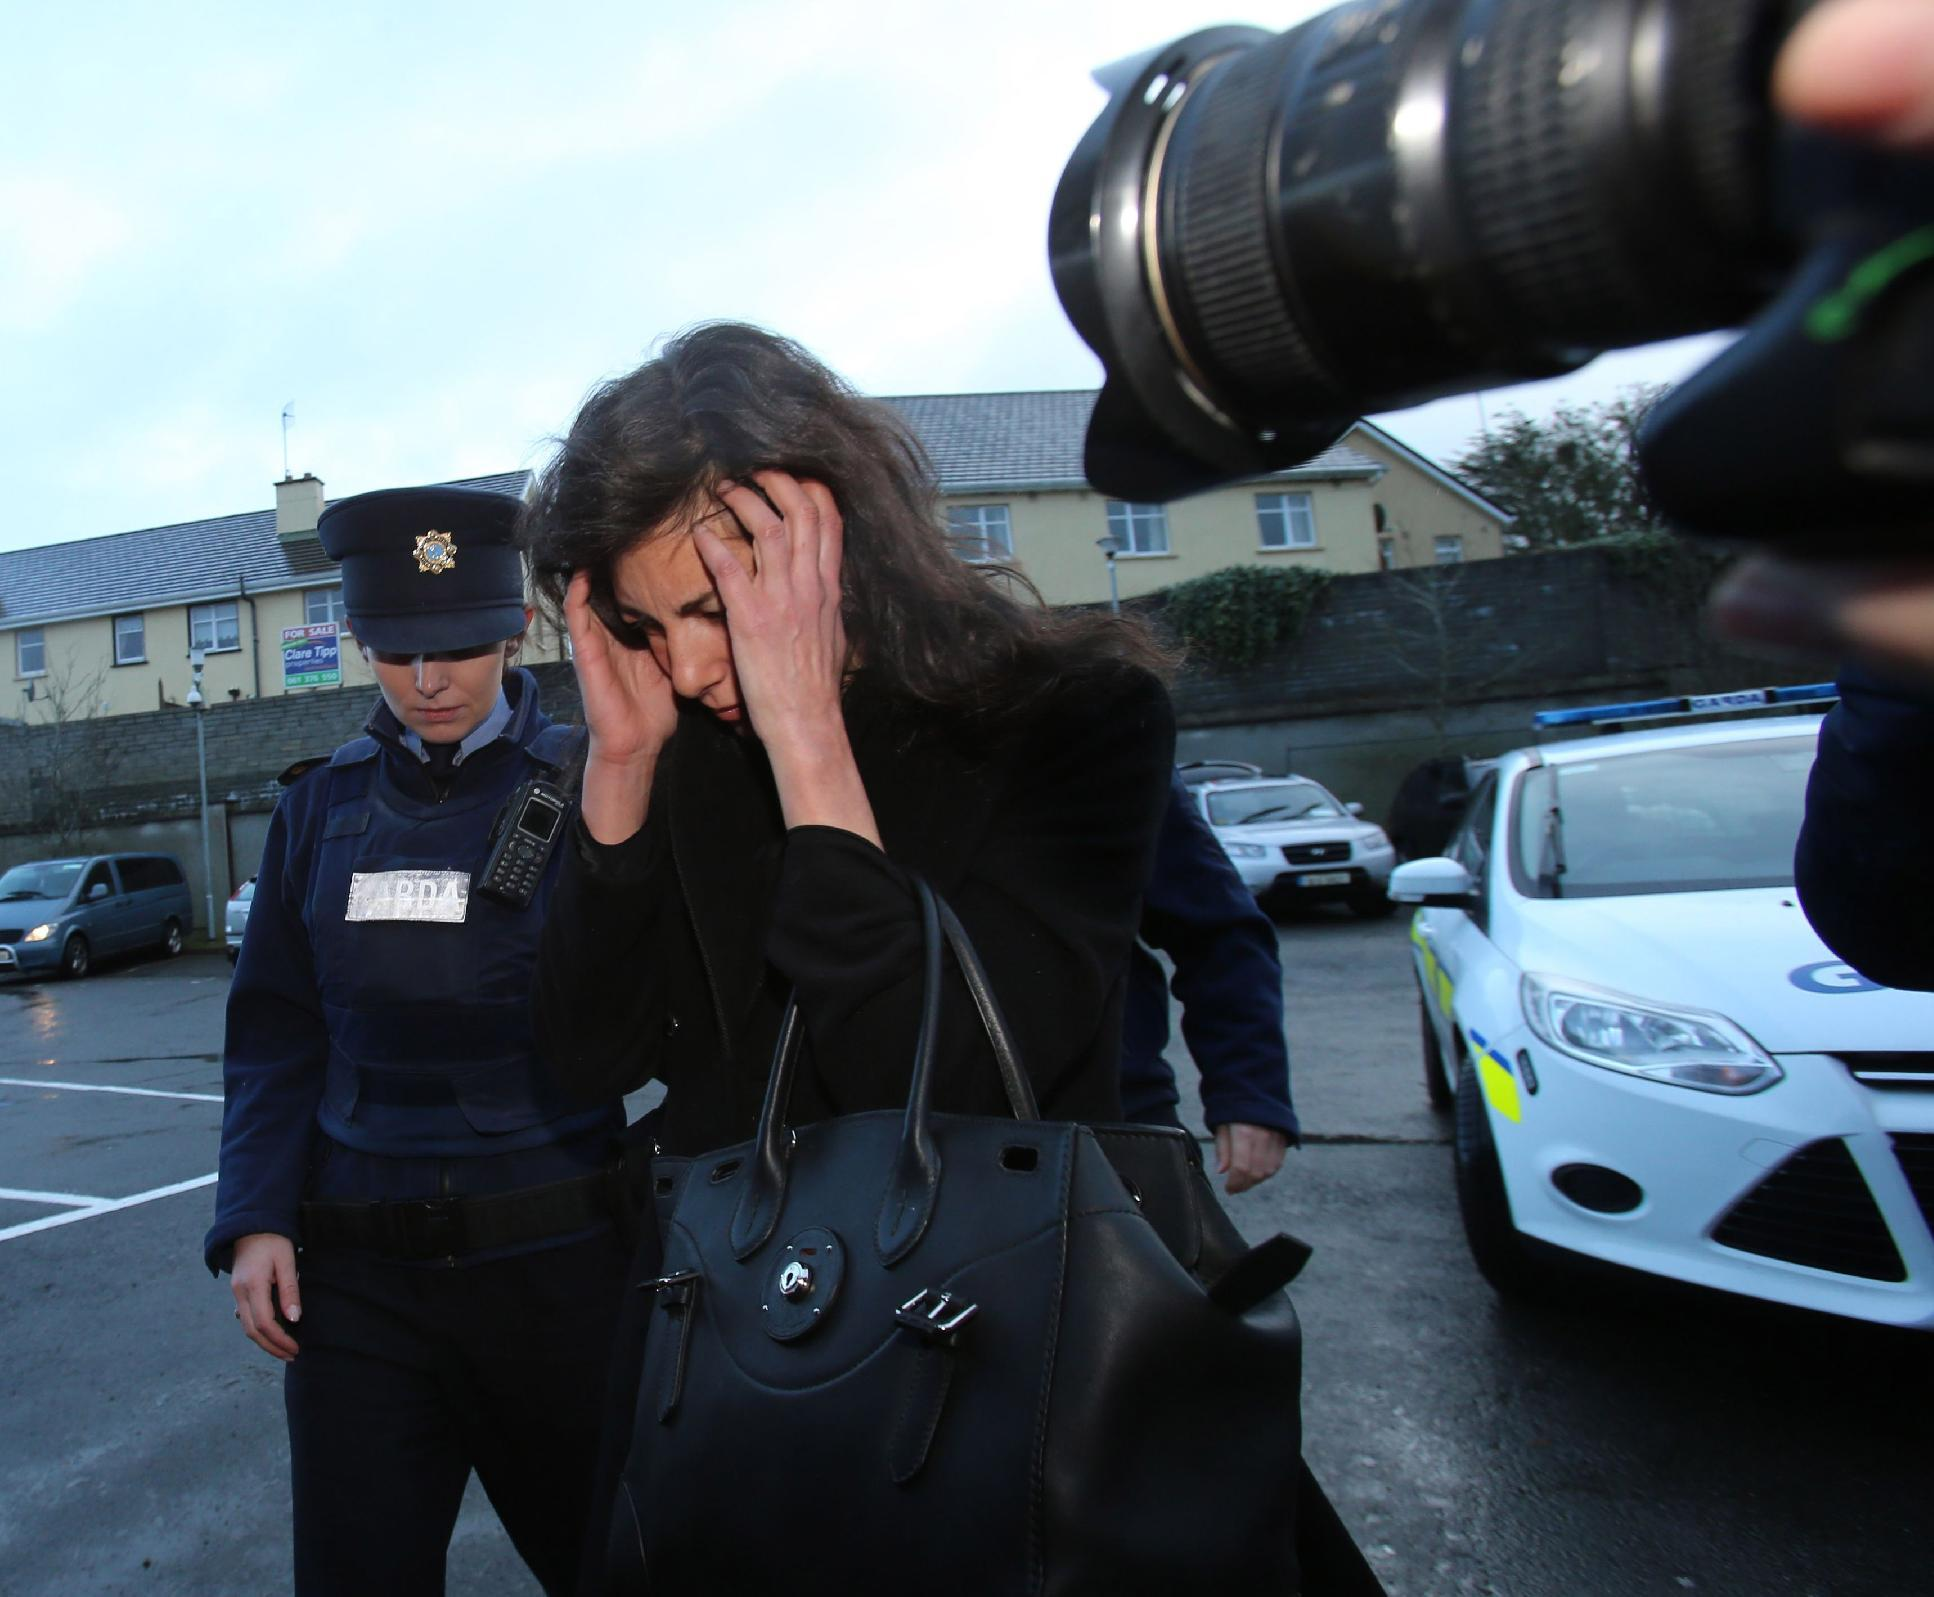 Jenny Lauren, centre, Niece of fashion designer Ralph Lauren, arrives at Killaloe District Court, in Killaloe, Ireland, Tuesday, Jan. 7, 2014. The niece of fashion designer Ralph Lauren has appeared in an Irish court on charges of being drunk and disorderly on a New York-bound plane. Jewelry designer Jenny Lauren was arrested after a Delta flight from Barcelona made an unscheduled stop at Shannon Airport on Monday. (AP Photo/PA, Niall Carson) UNITED KINGDOM OUT